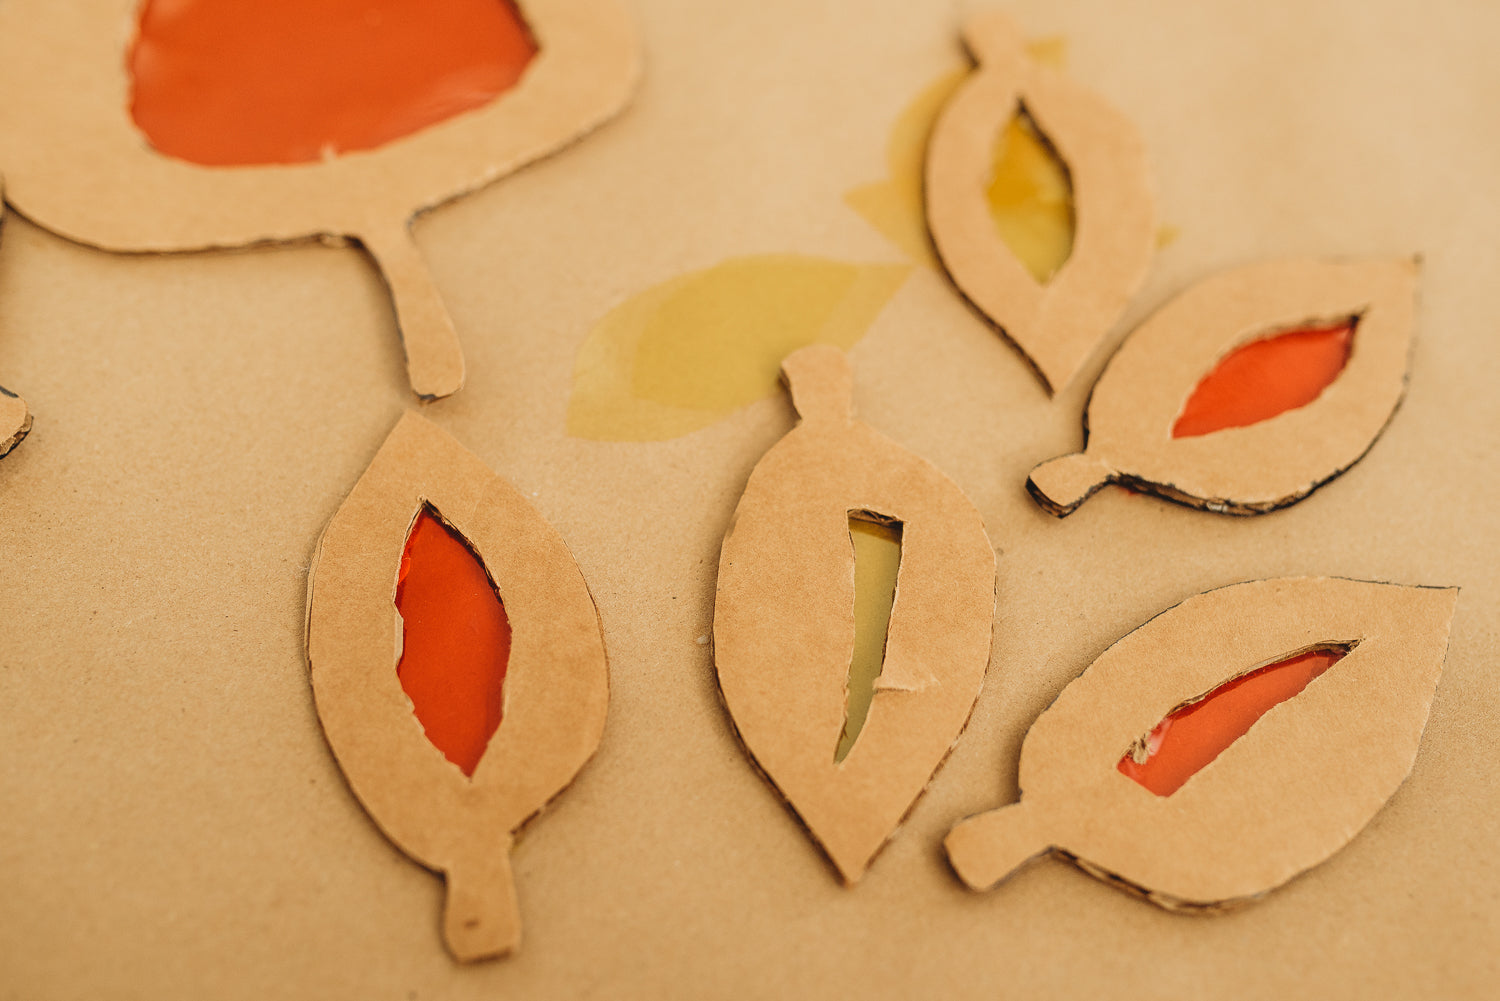 Series of cardboard leaves for an eco-friendly fall craft project.